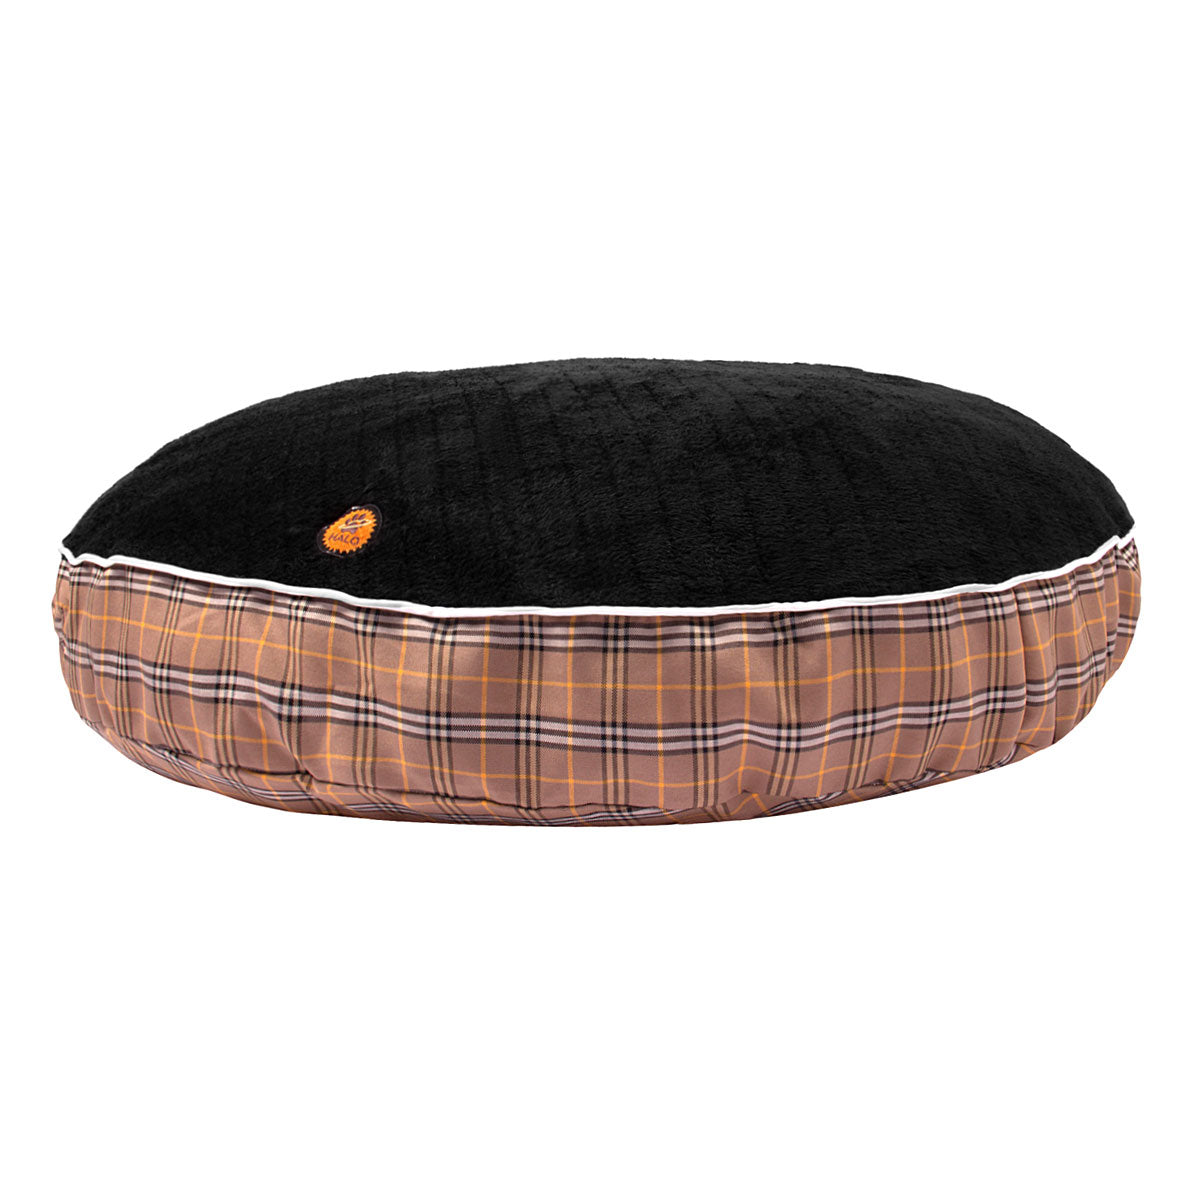 Halo Classic Plaid Round Dog Bed - Halo - Breeches.com